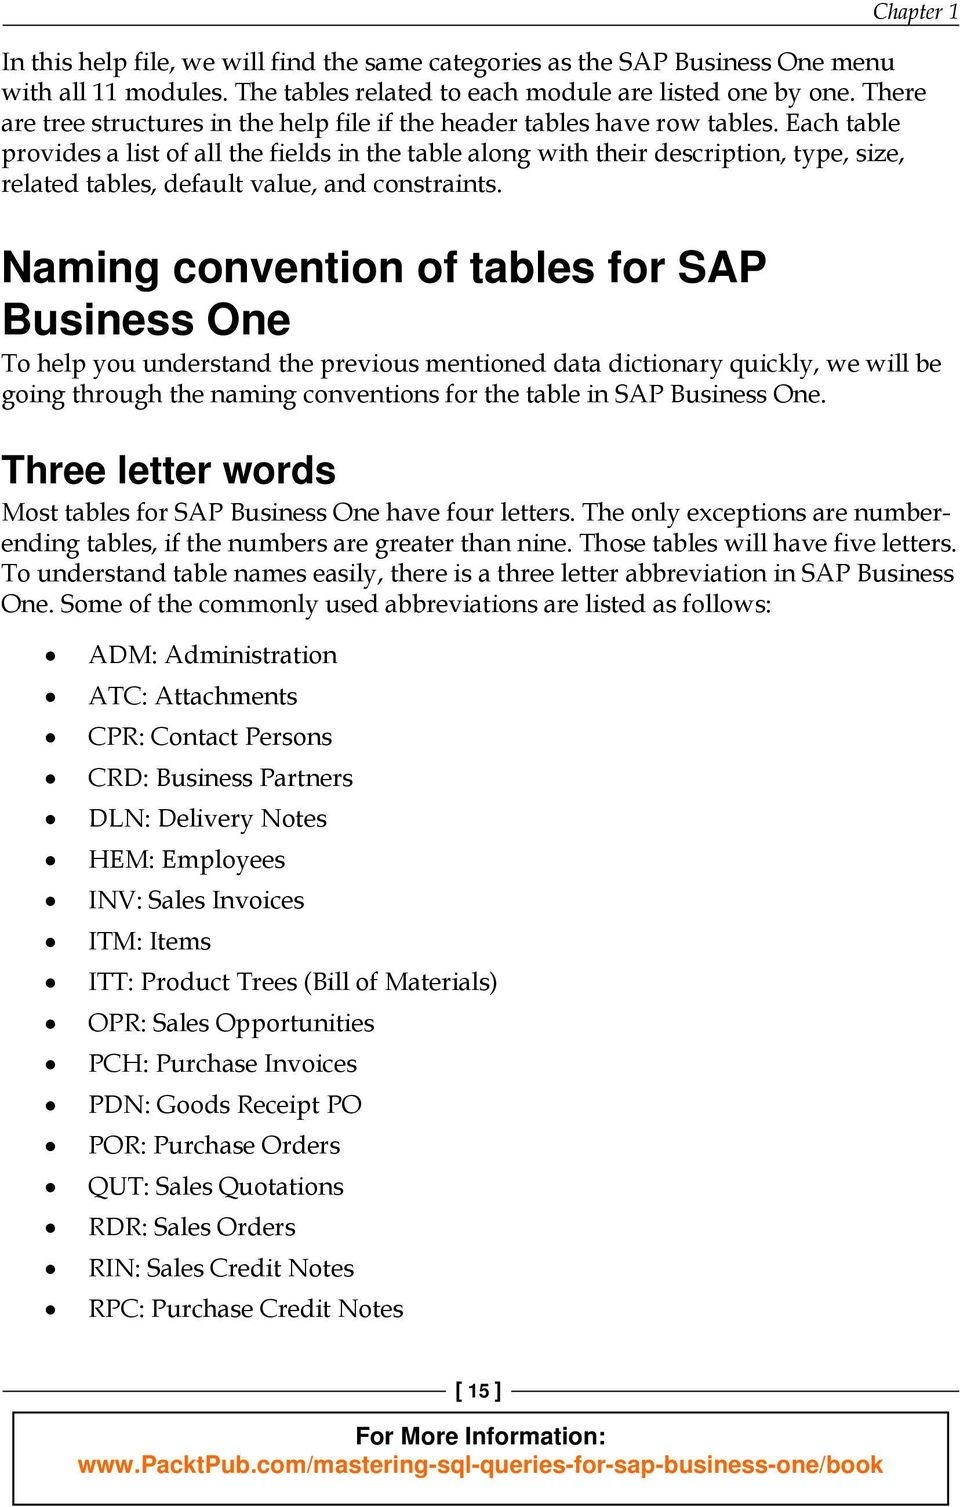 Mastering SQL Queries for SAP Business One - PDF